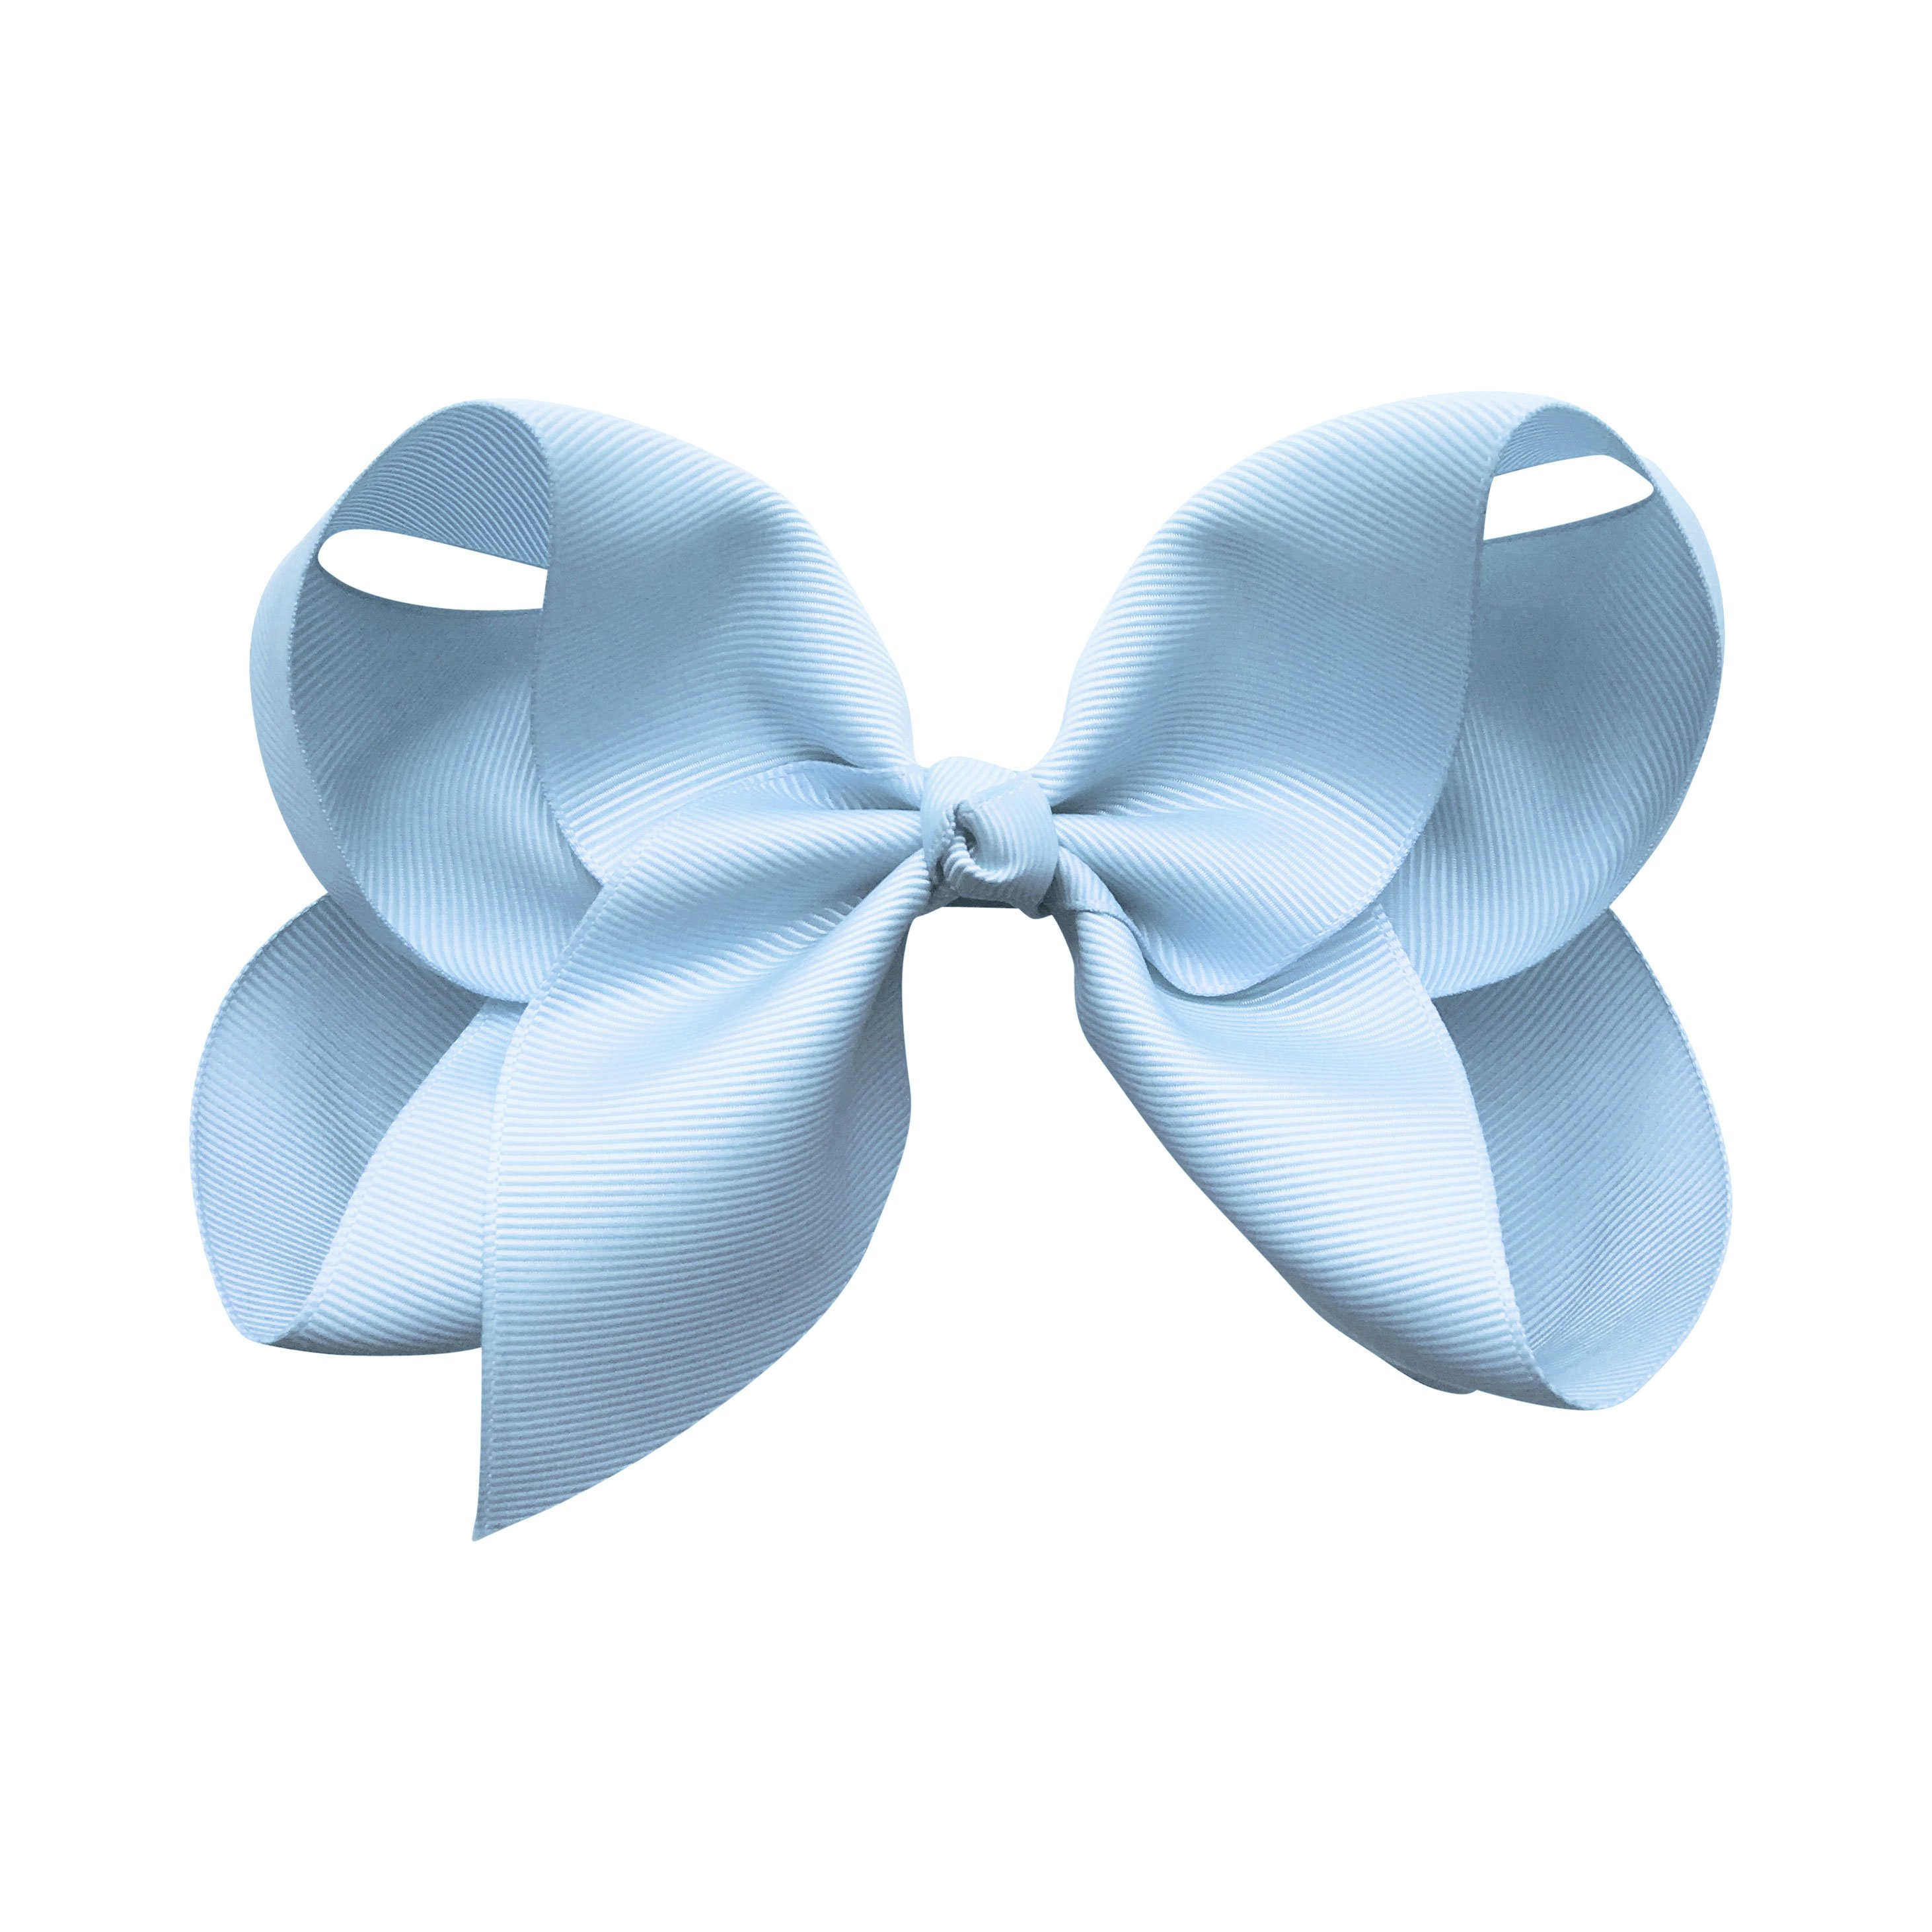 Image of Jumbo Boutique Bow - alligator clip - bluebell